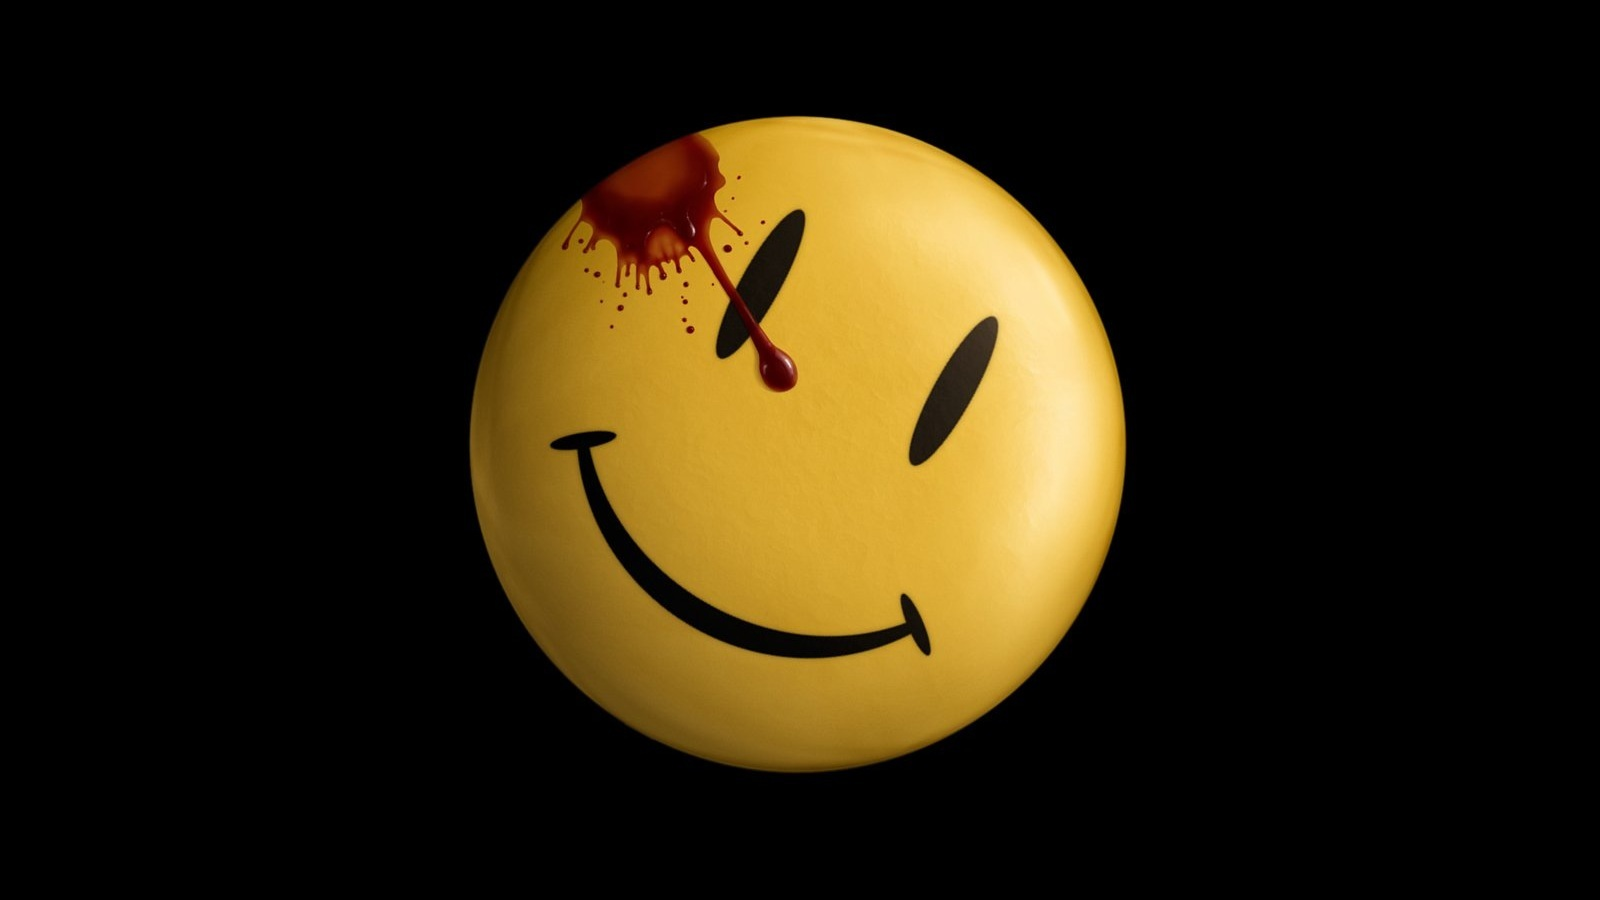 Watchmen blood smiley face HD Wallpaper